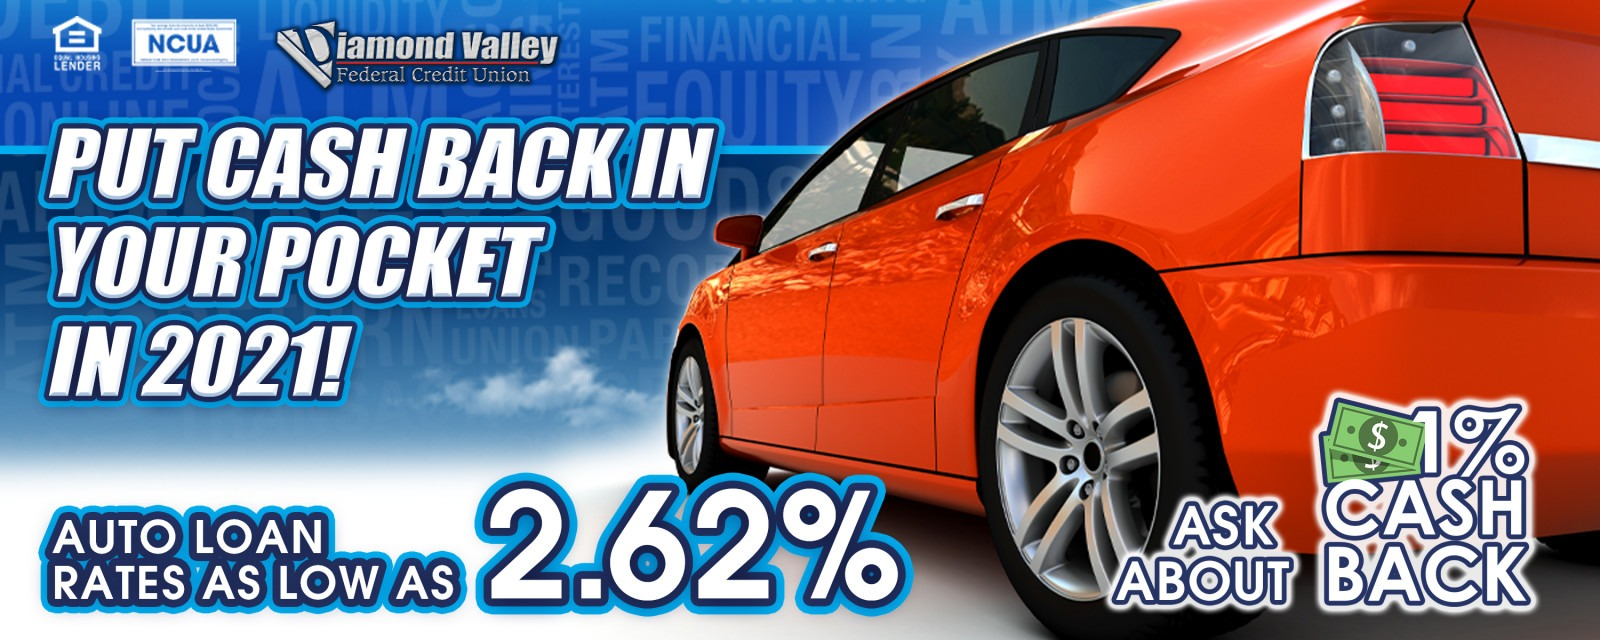 Auto Loans as low as 2.62%! Ask about 1% CASH BACK!